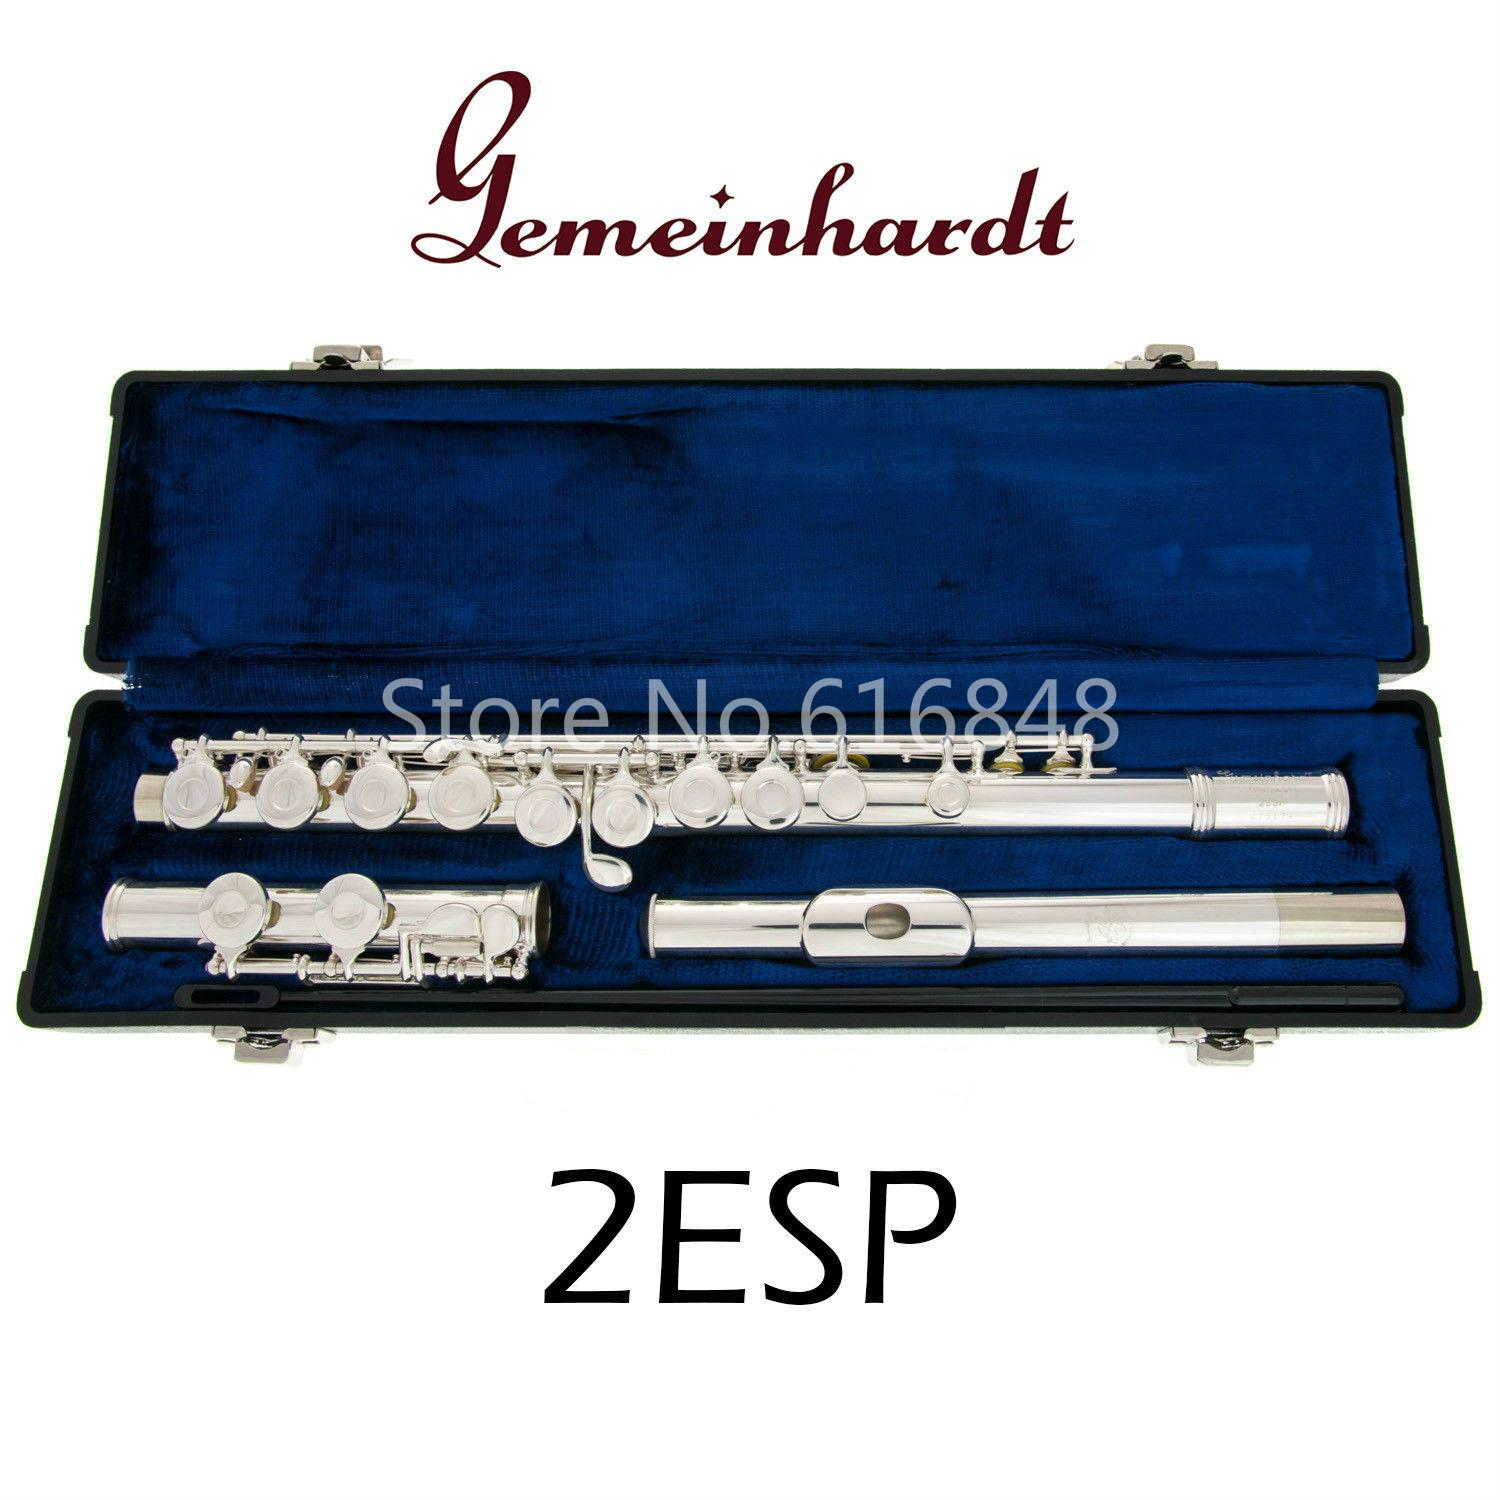 Gemeinhardt 2ESP C Tune Flute 16 Keys Holes Closed New Cupronickel Silver Plated Flute Musical Instrument Flute with Case Free Shipping